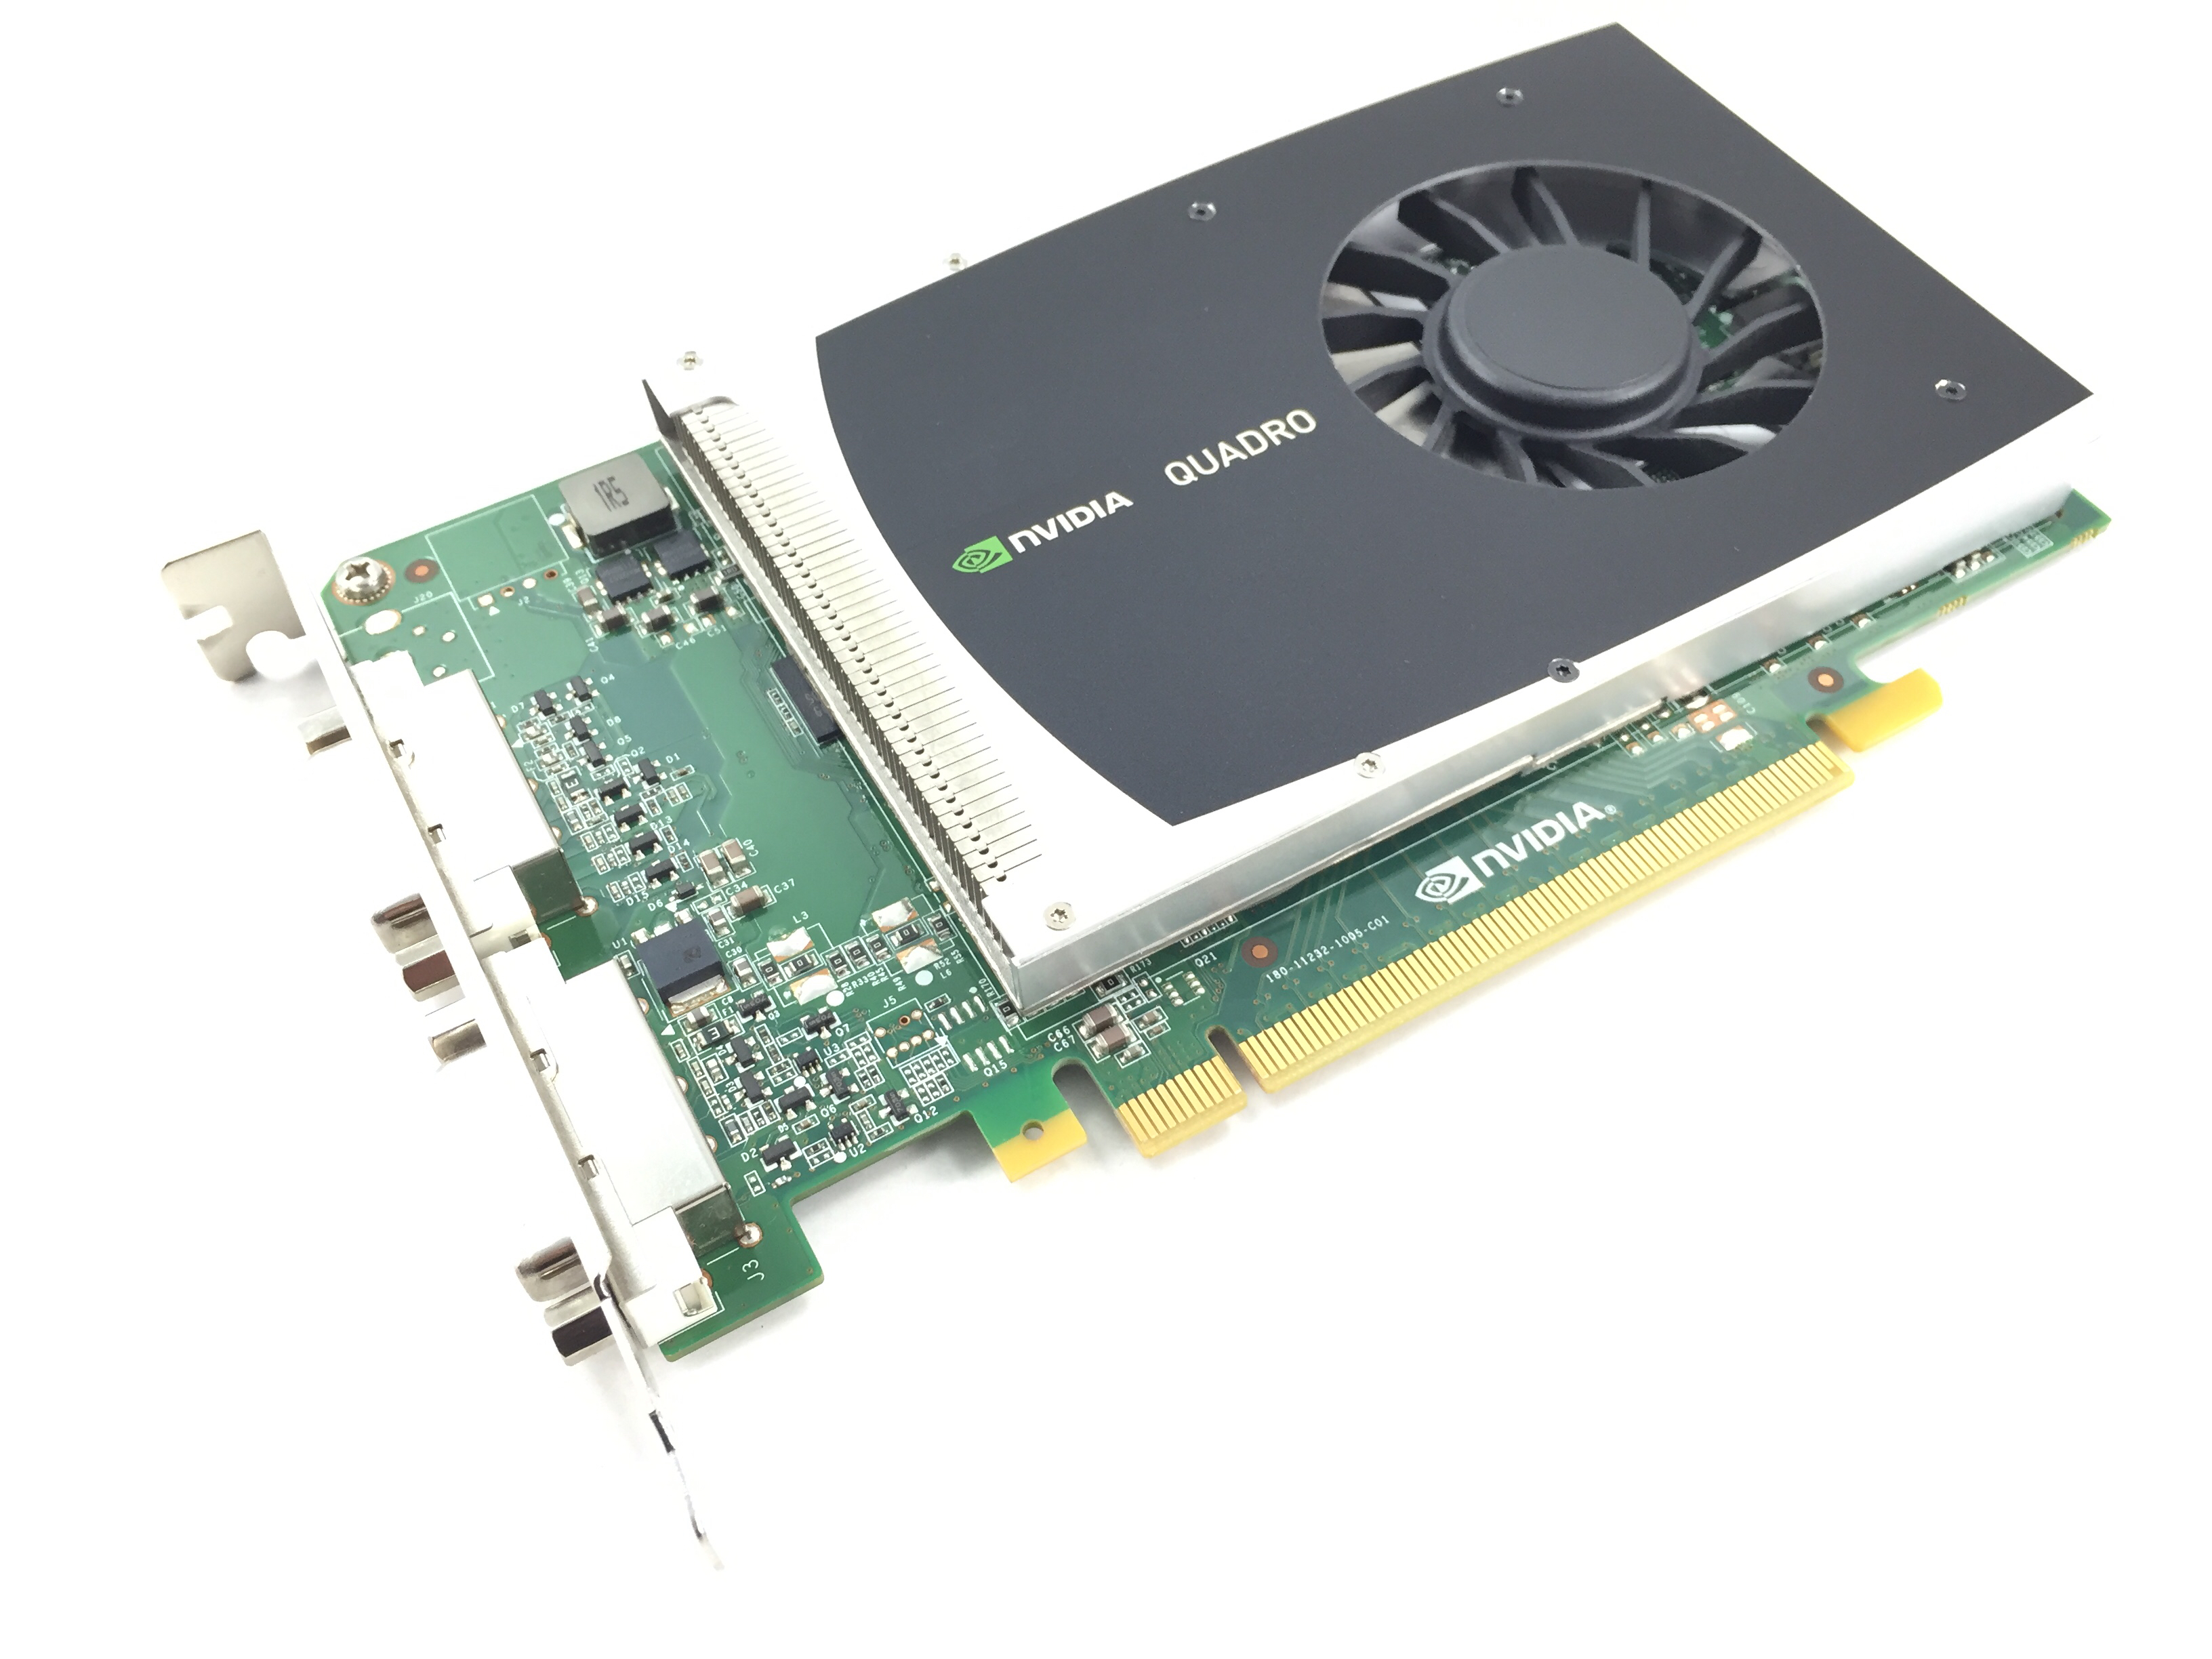 IBM NVIDIA QUADRO 2000 D 1GB GDDR5 PCI-E GRAPHICS CARD (03T8418)